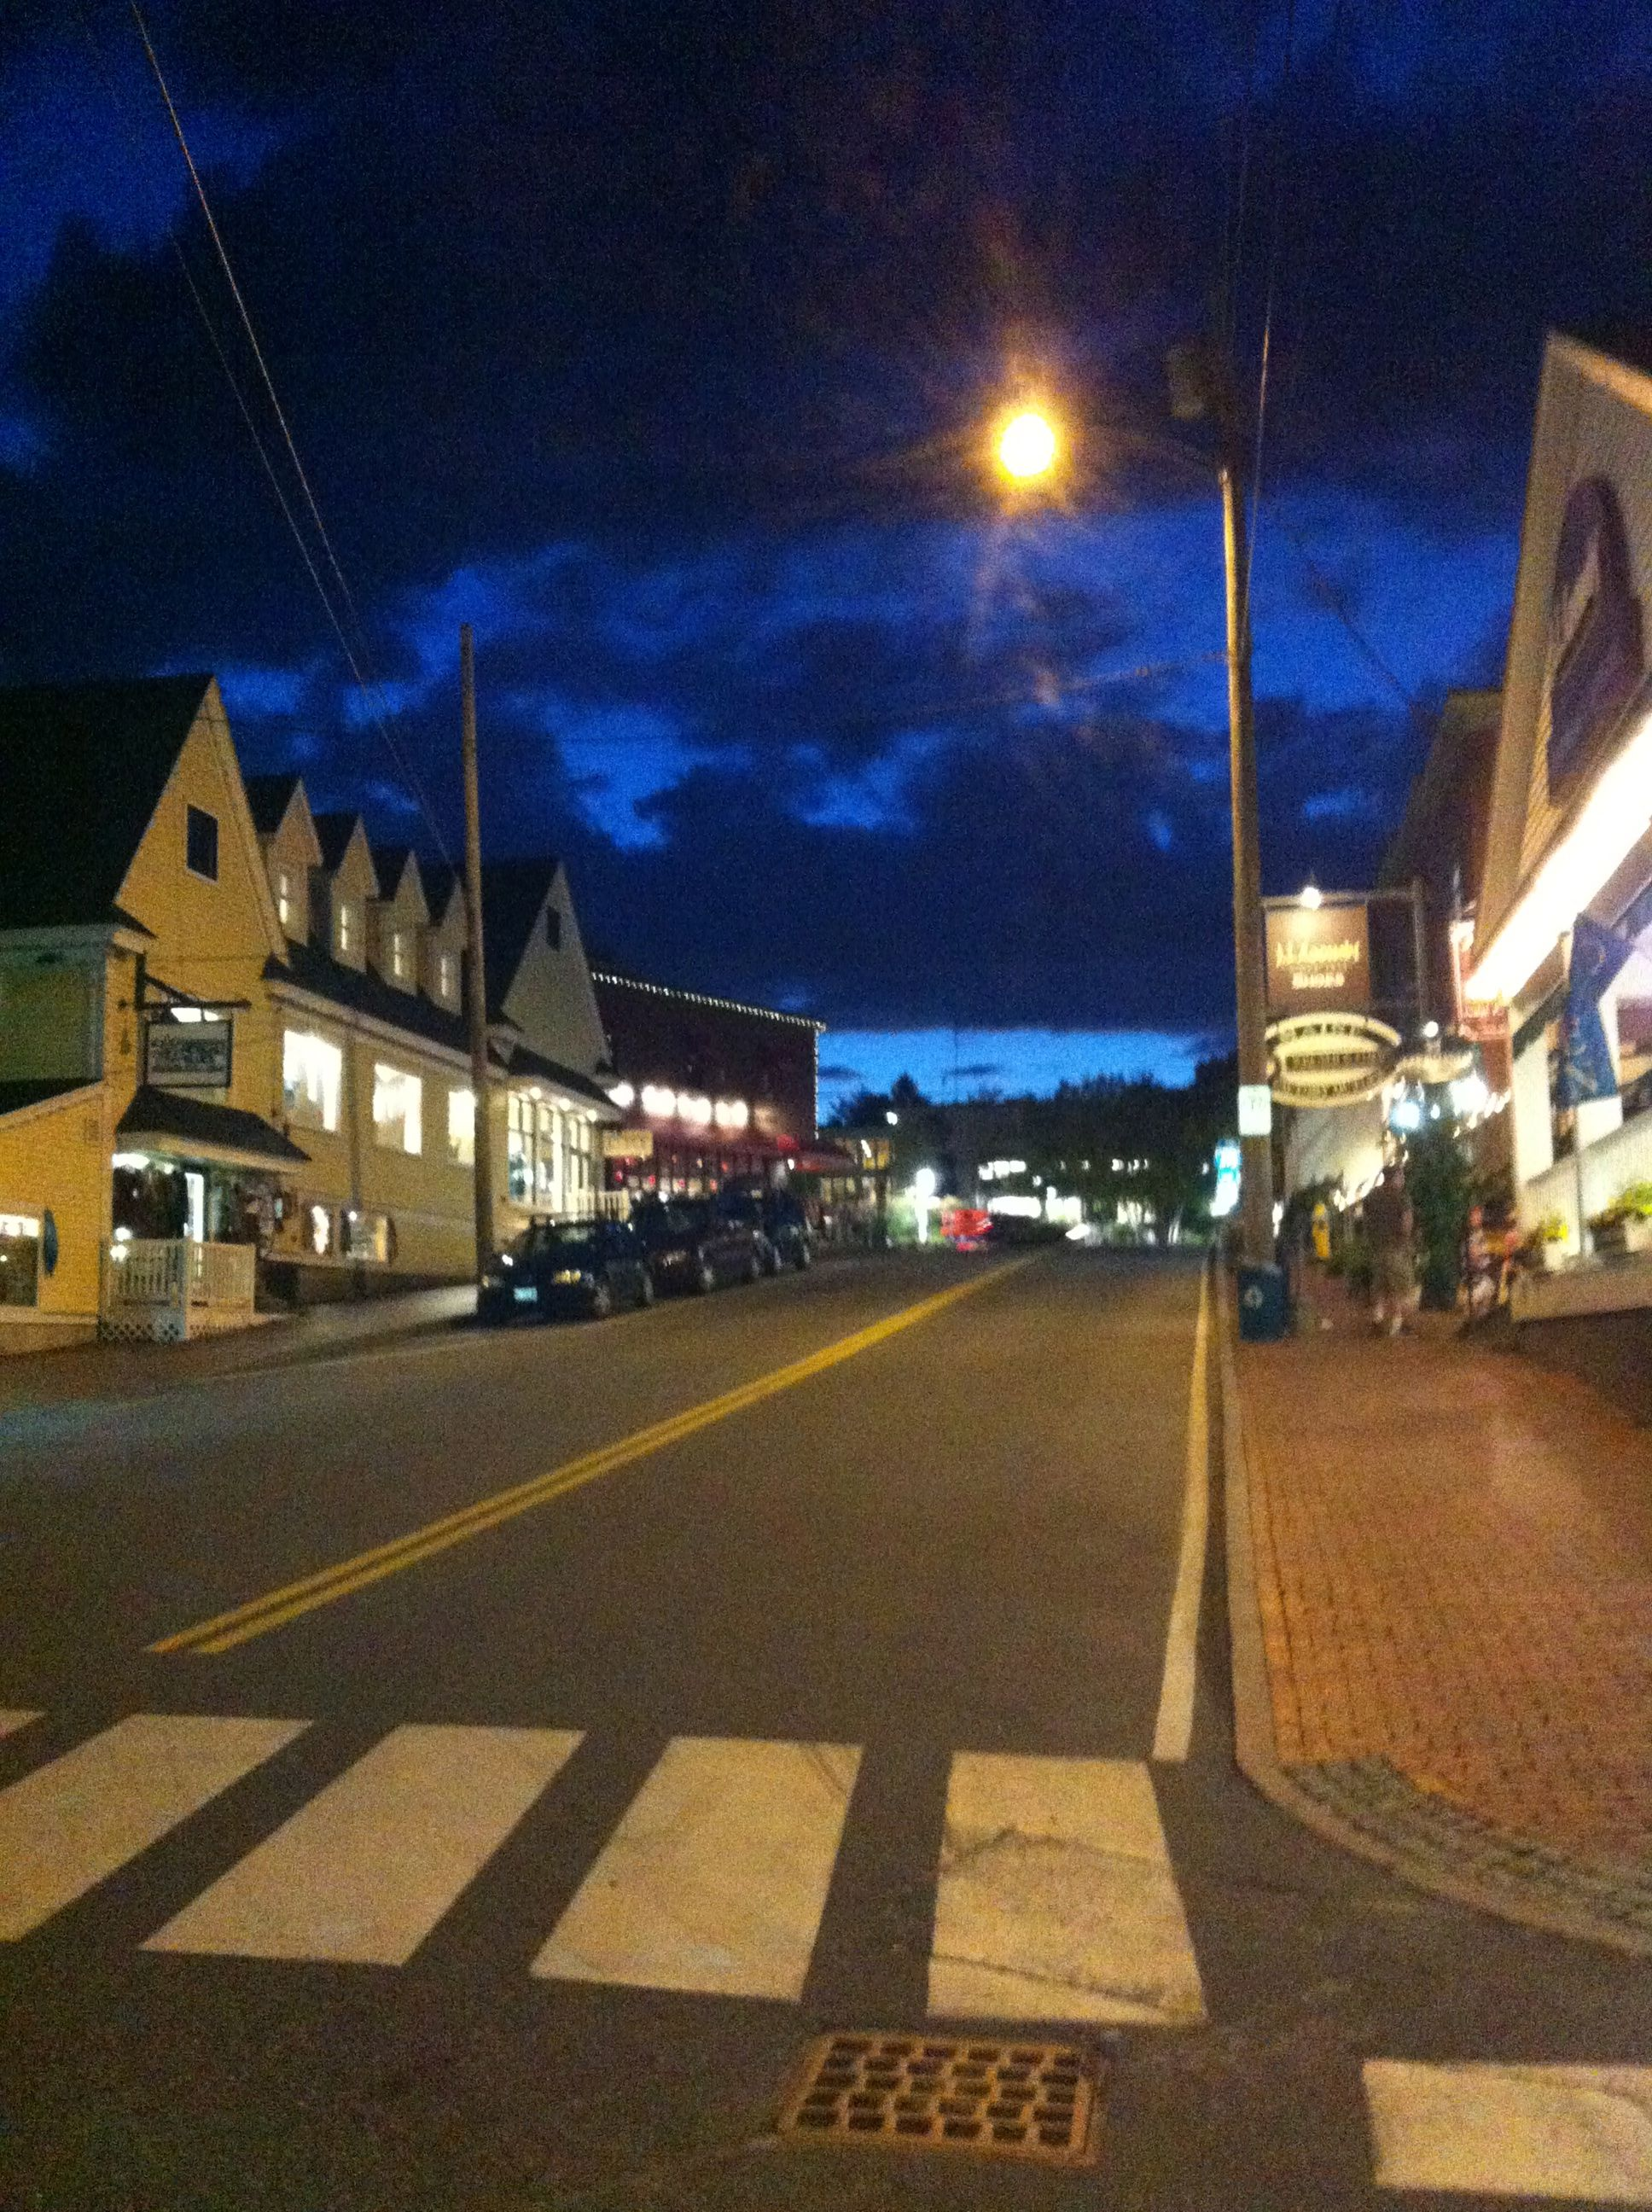 Freeport, Maine shopping & outlet stores in small town